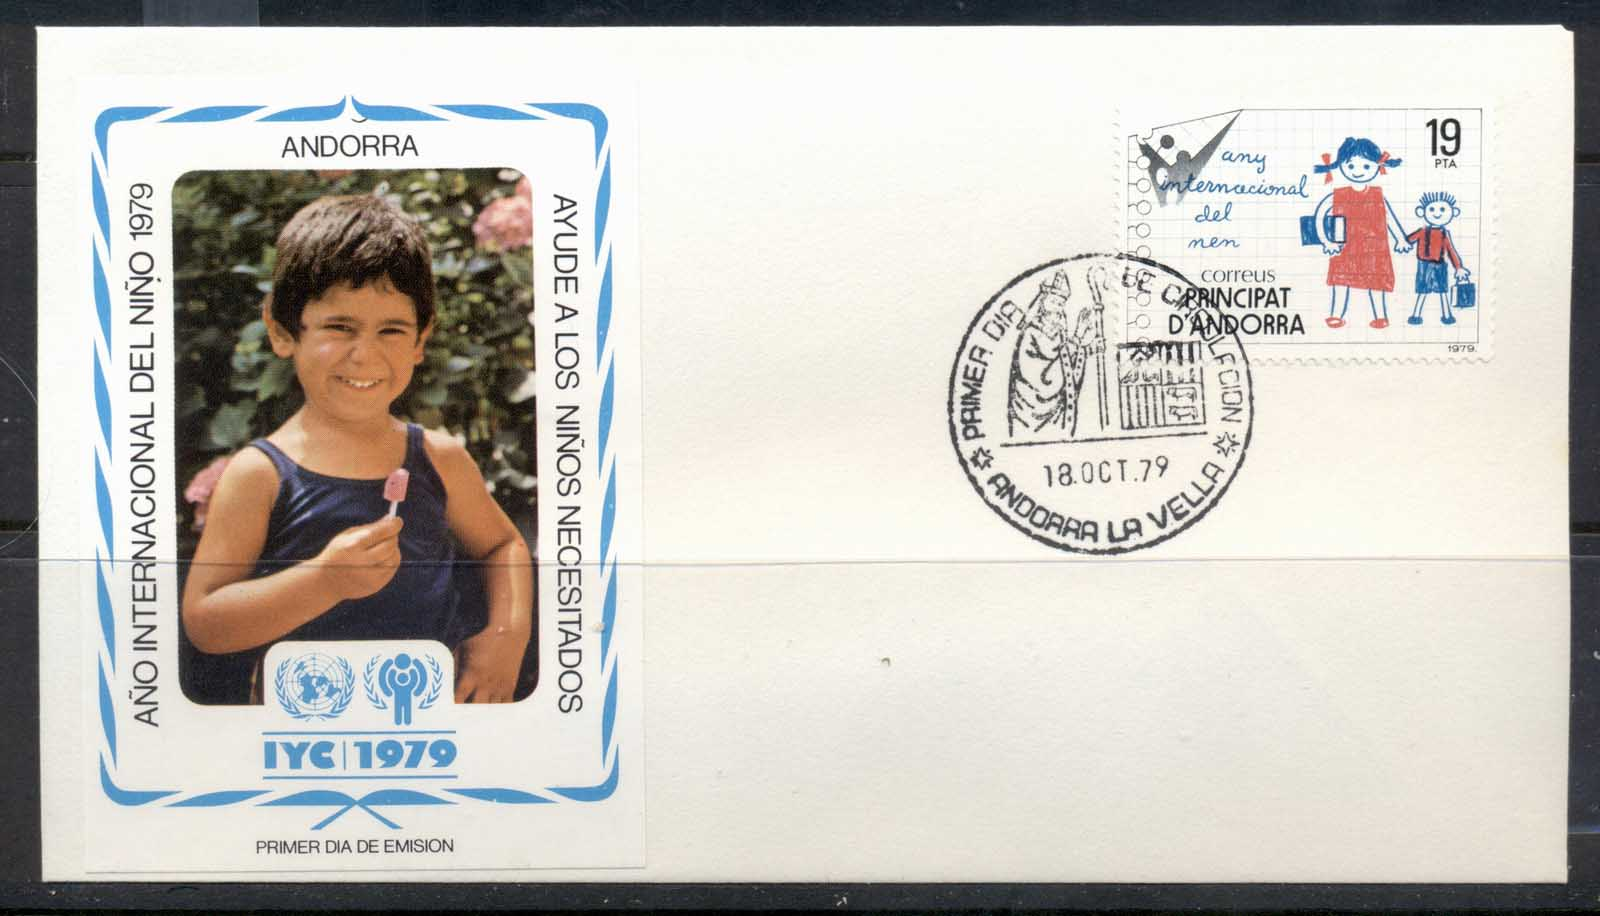 Andorra (Sp.) 1979 IYC International year of the Child FDC